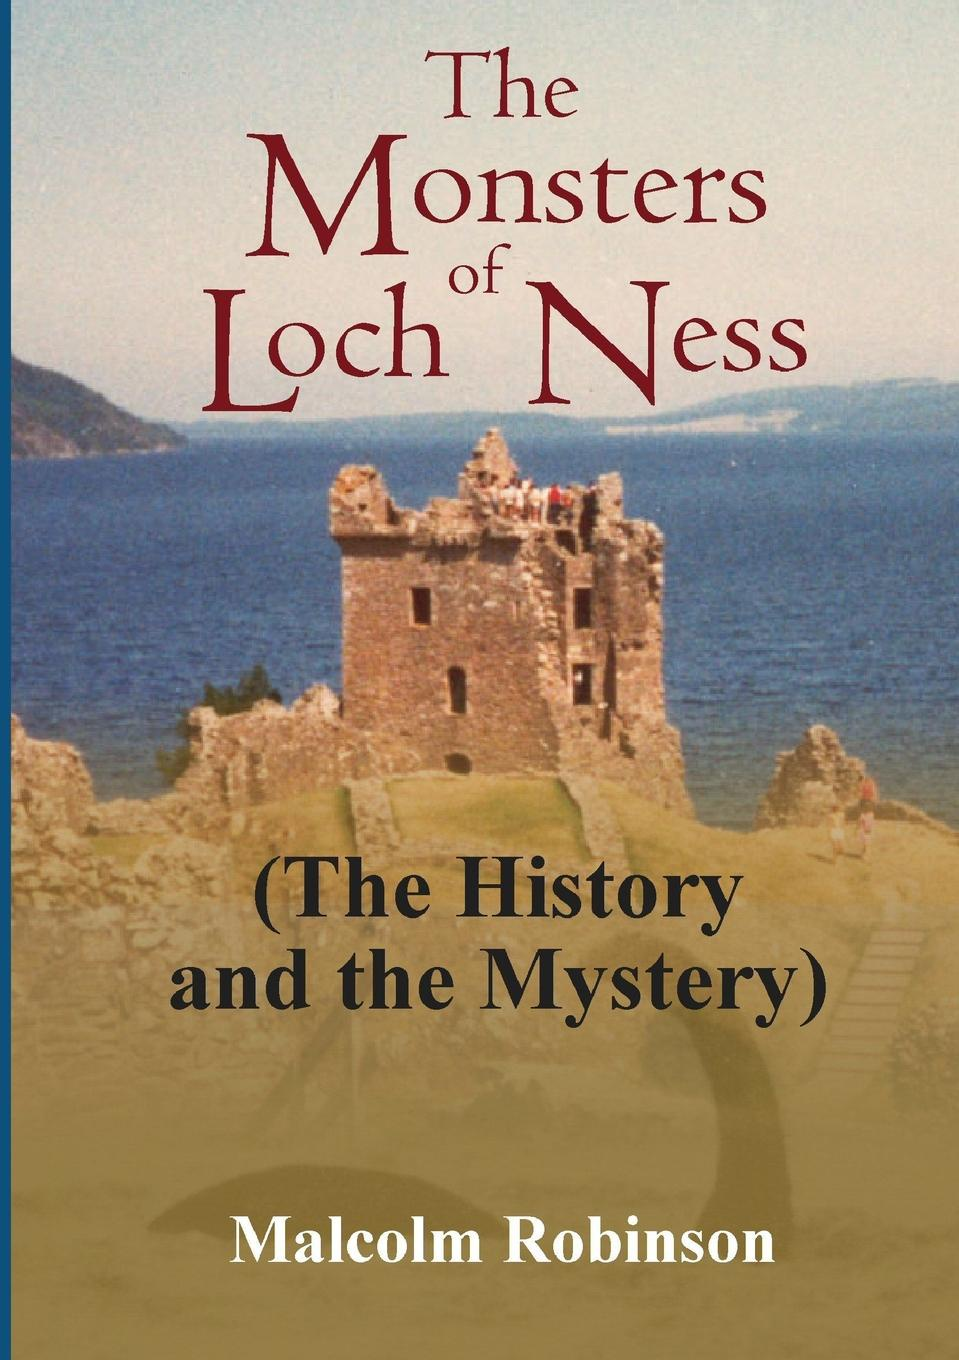 Malcolm Robinson The Monsters of Loch Ness (The History and the Mystery) malcolm kemp extreme events robust portfolio construction in the presence of fat tails isbn 9780470976791